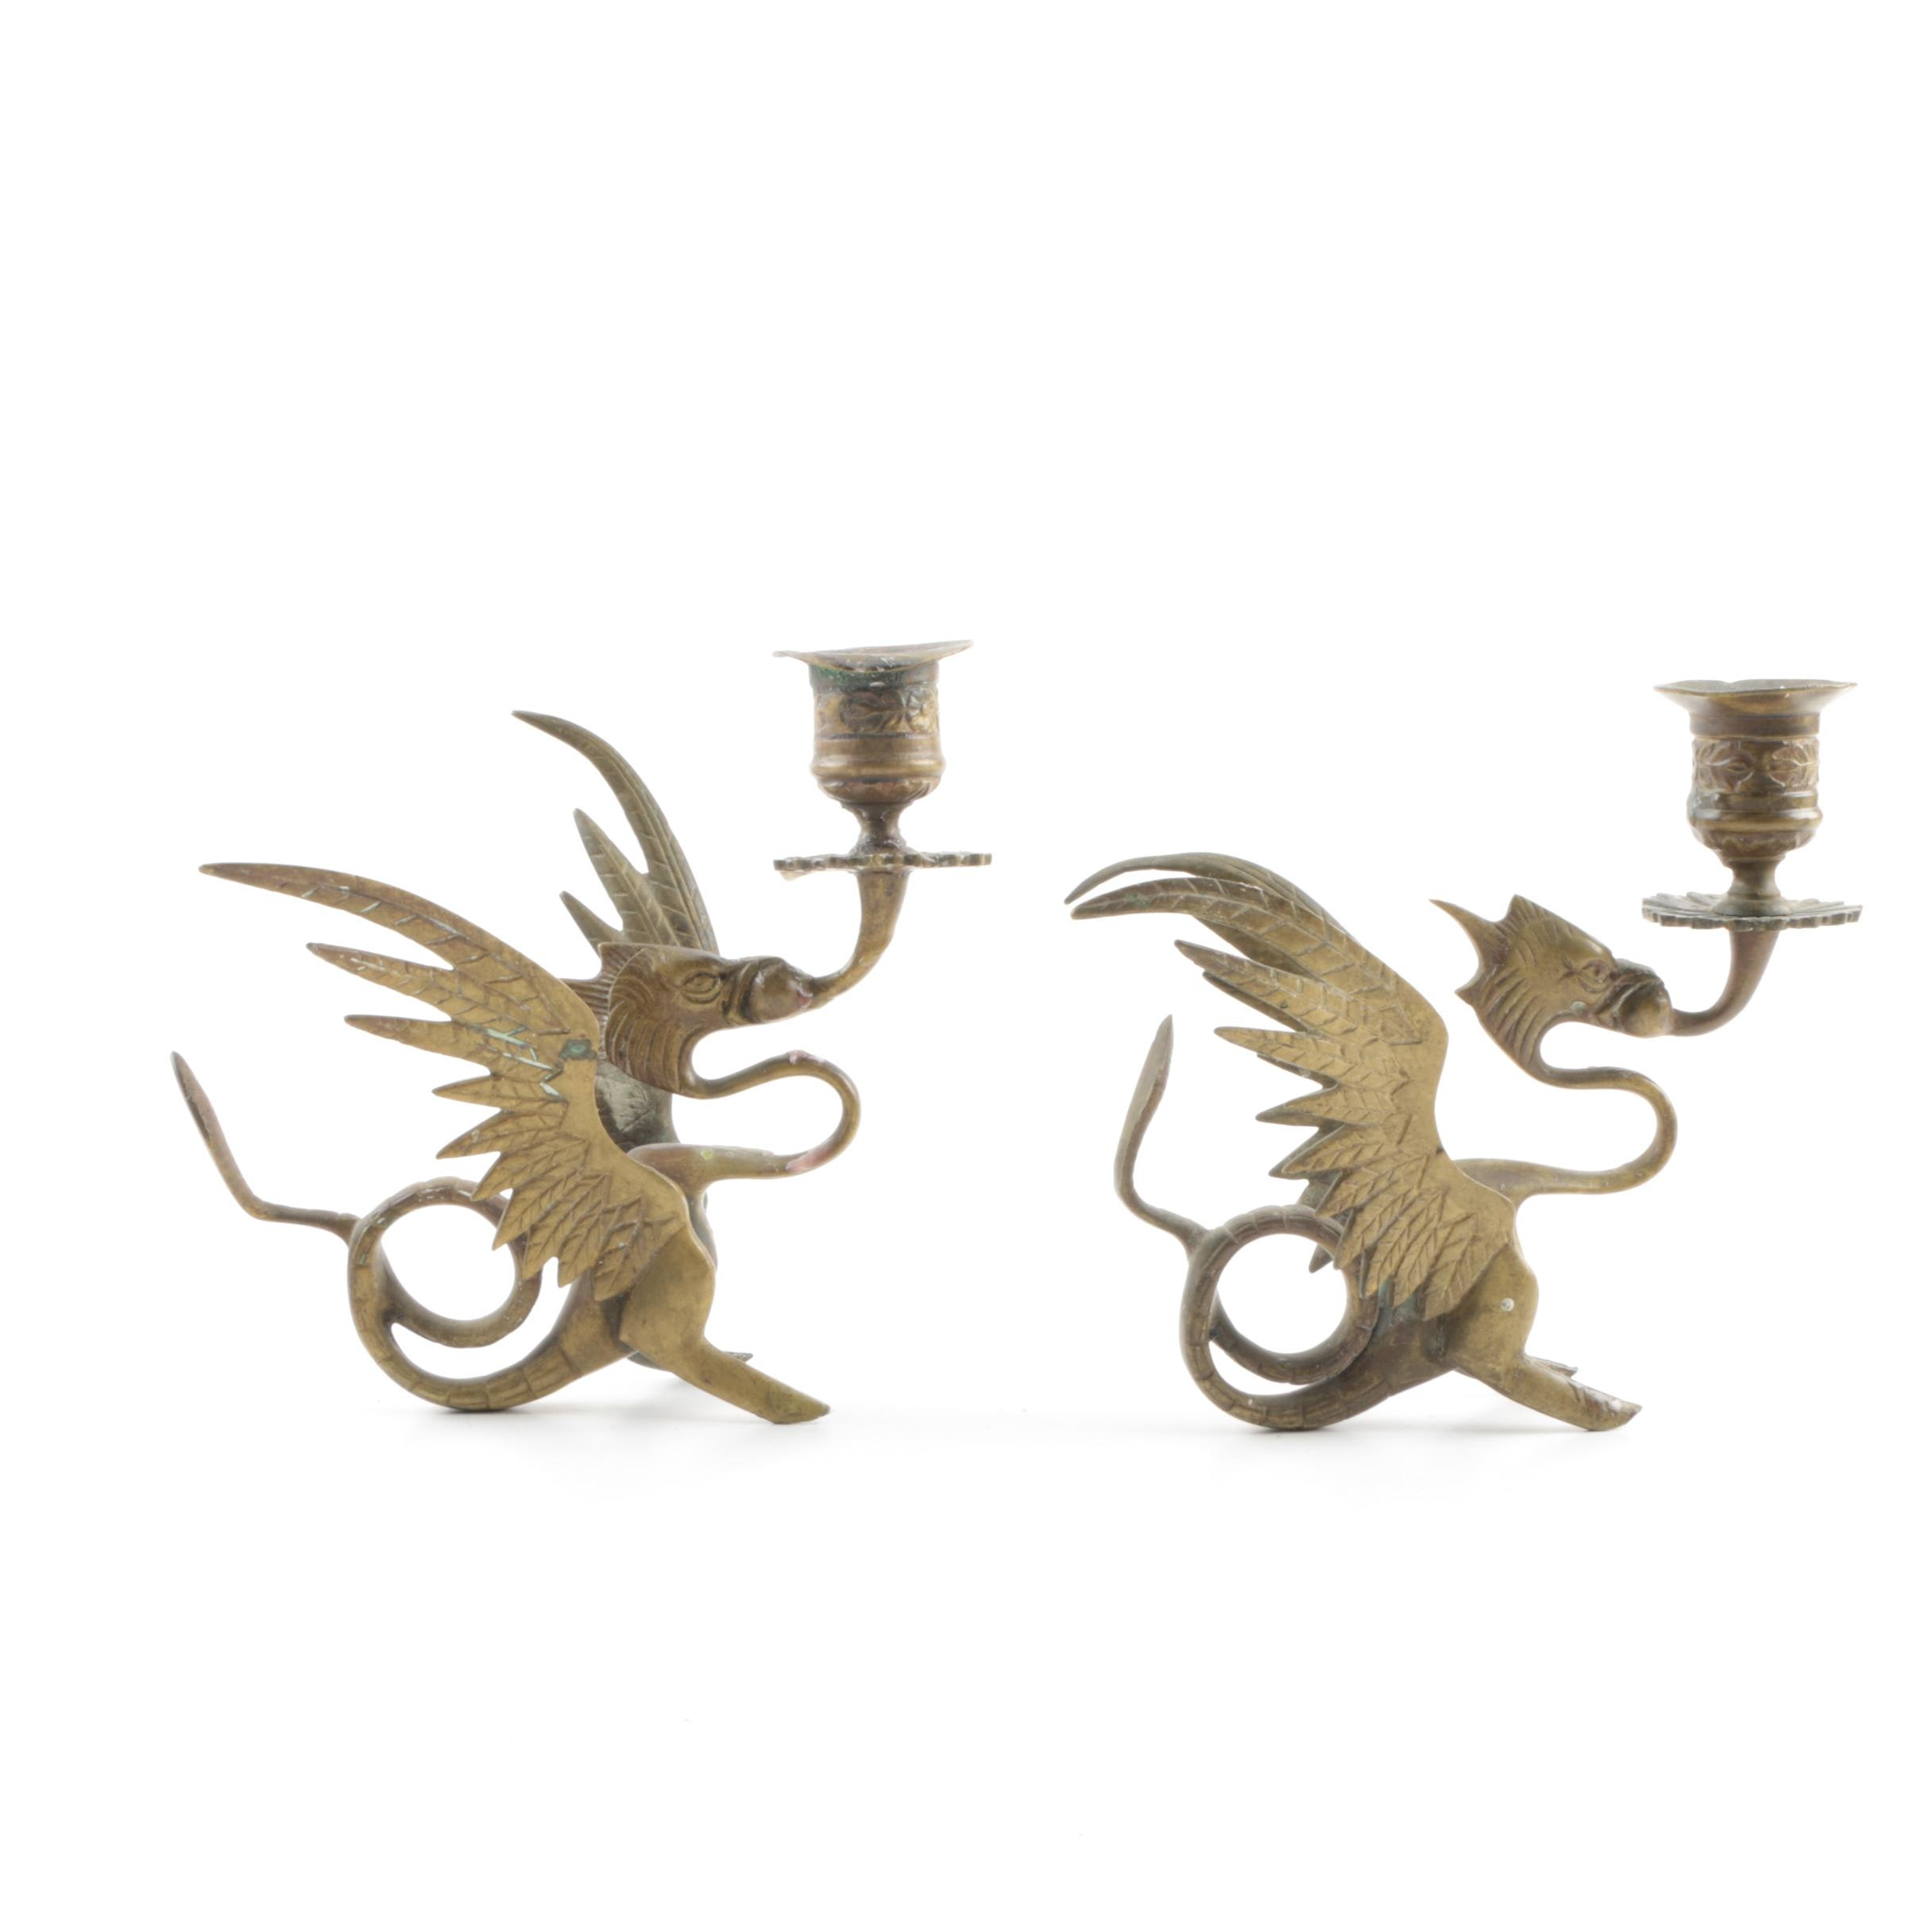 Asian Inspired Brass Figurative Dragon Candlestick Holders